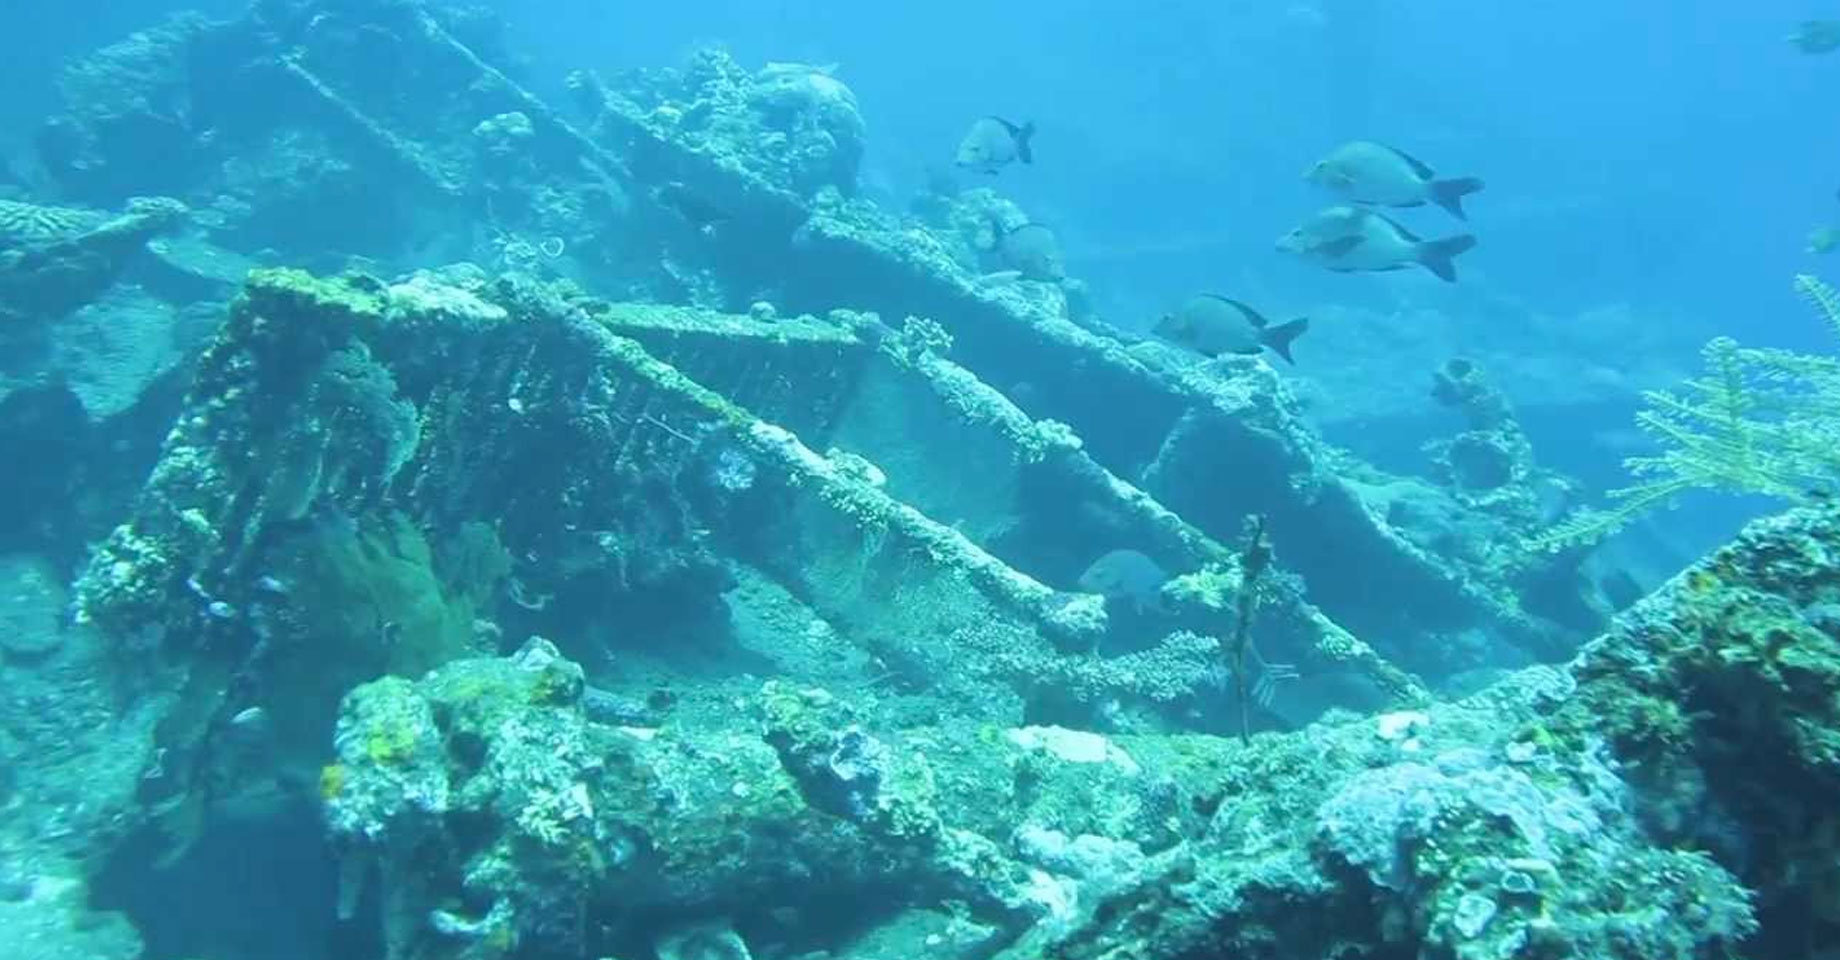 shipwreck of the USAT Liberty